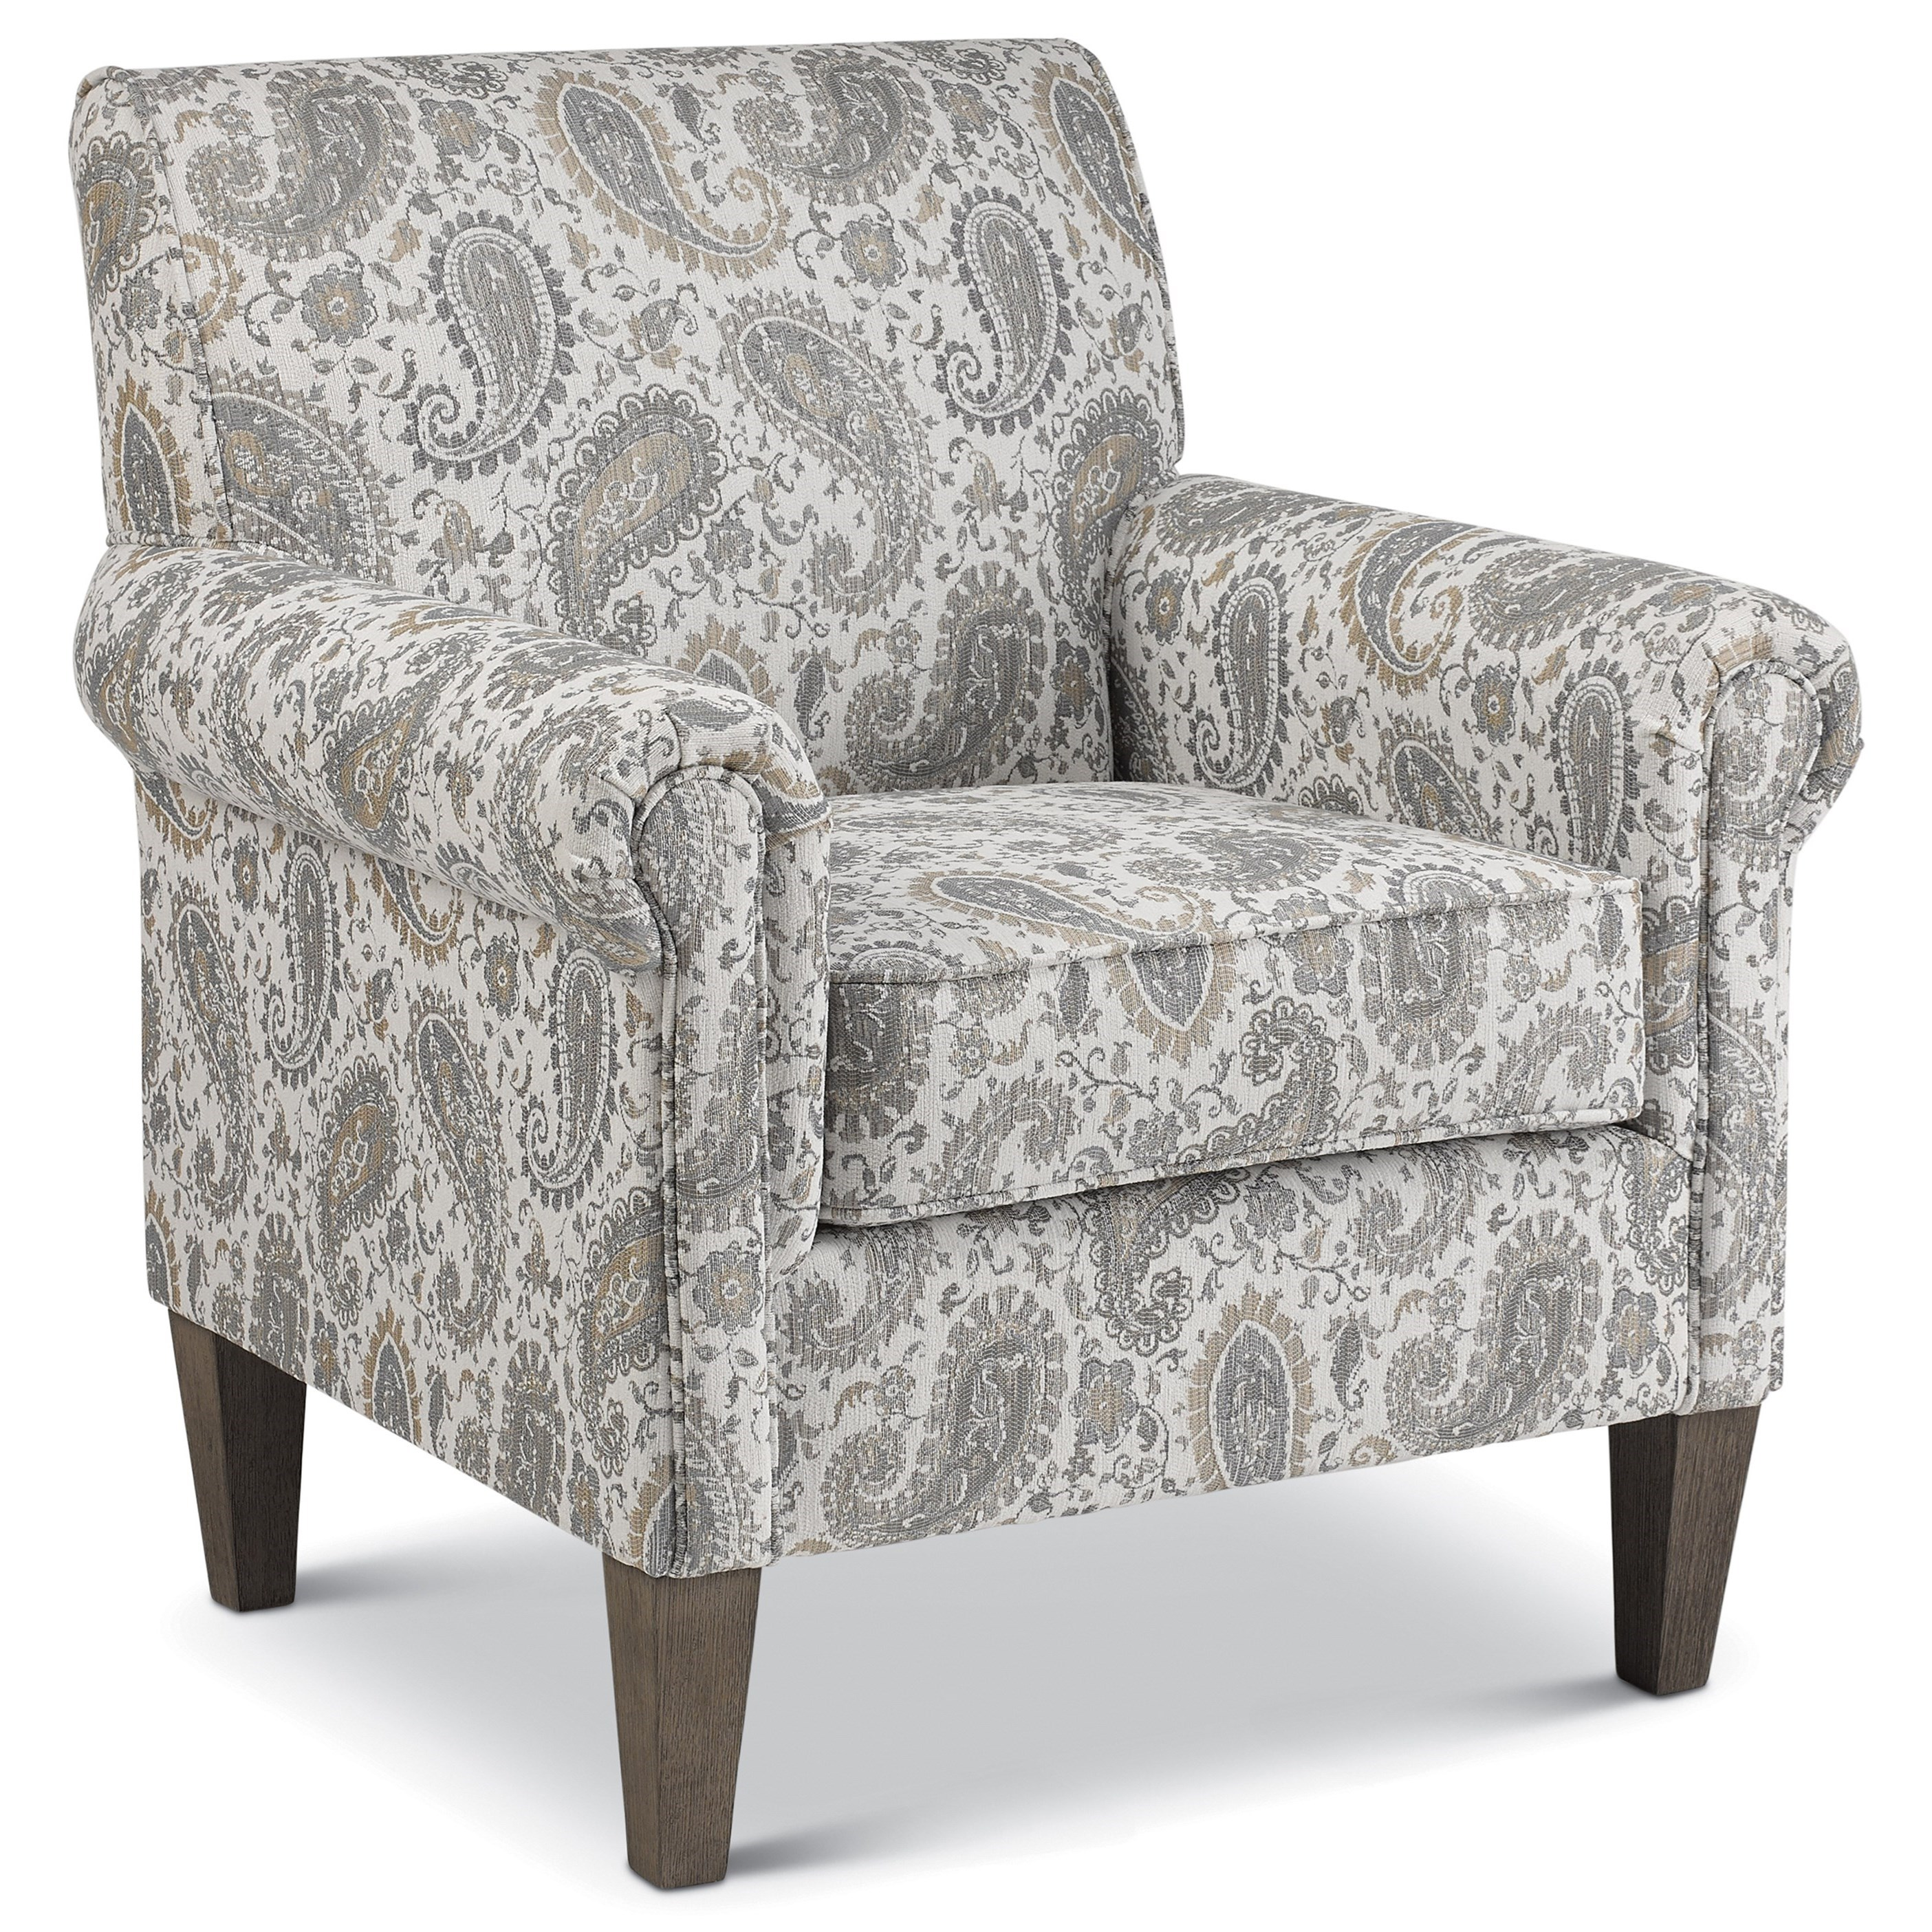 McBride Club Chair by Best Home Furnishings at Walker's Furniture